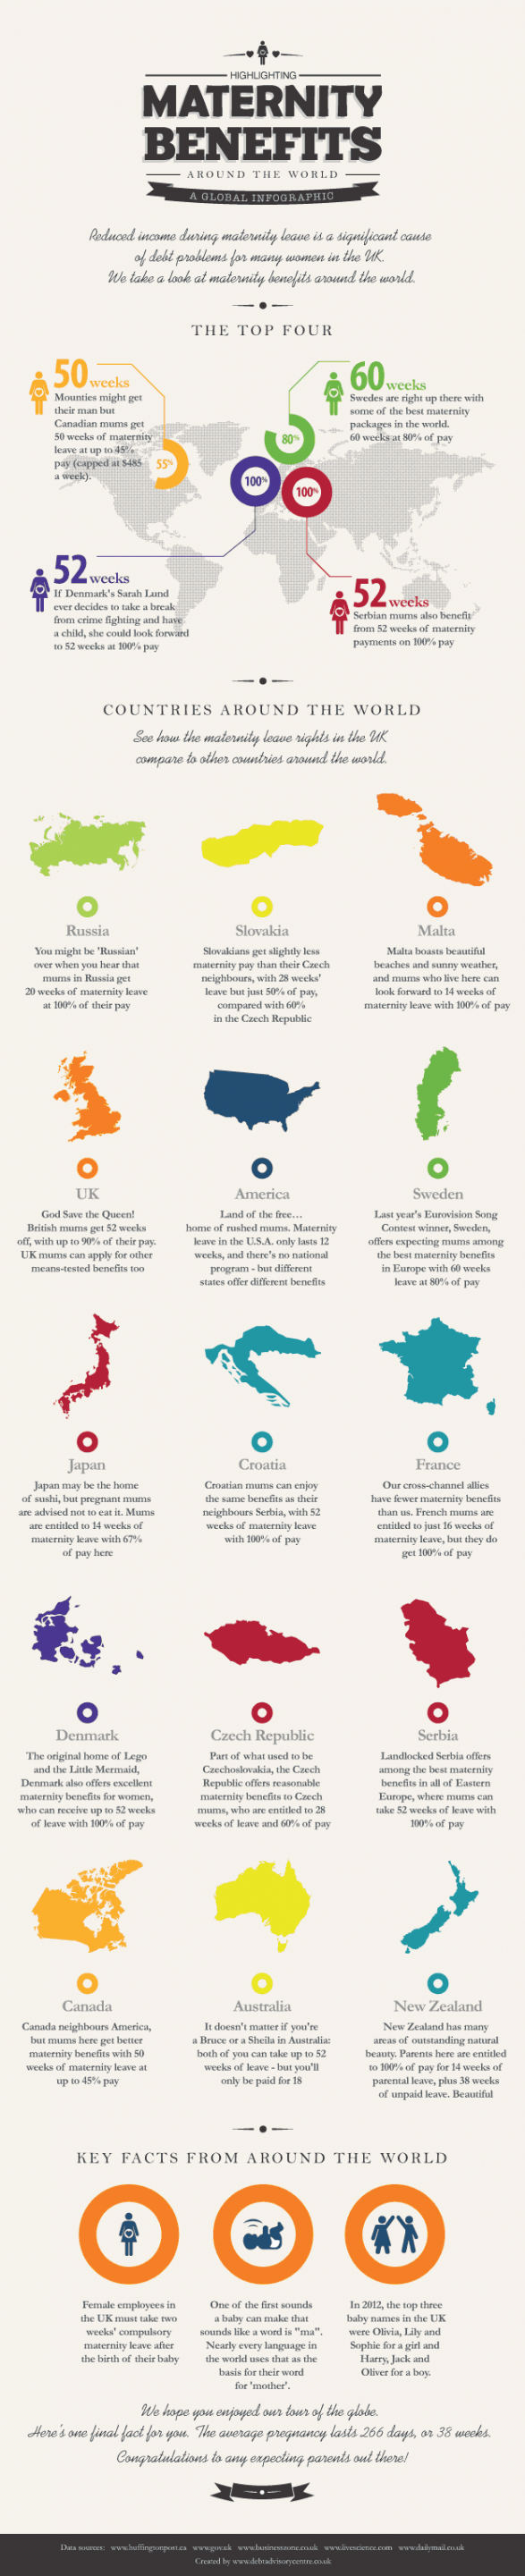 Maternity Benefits Around the World